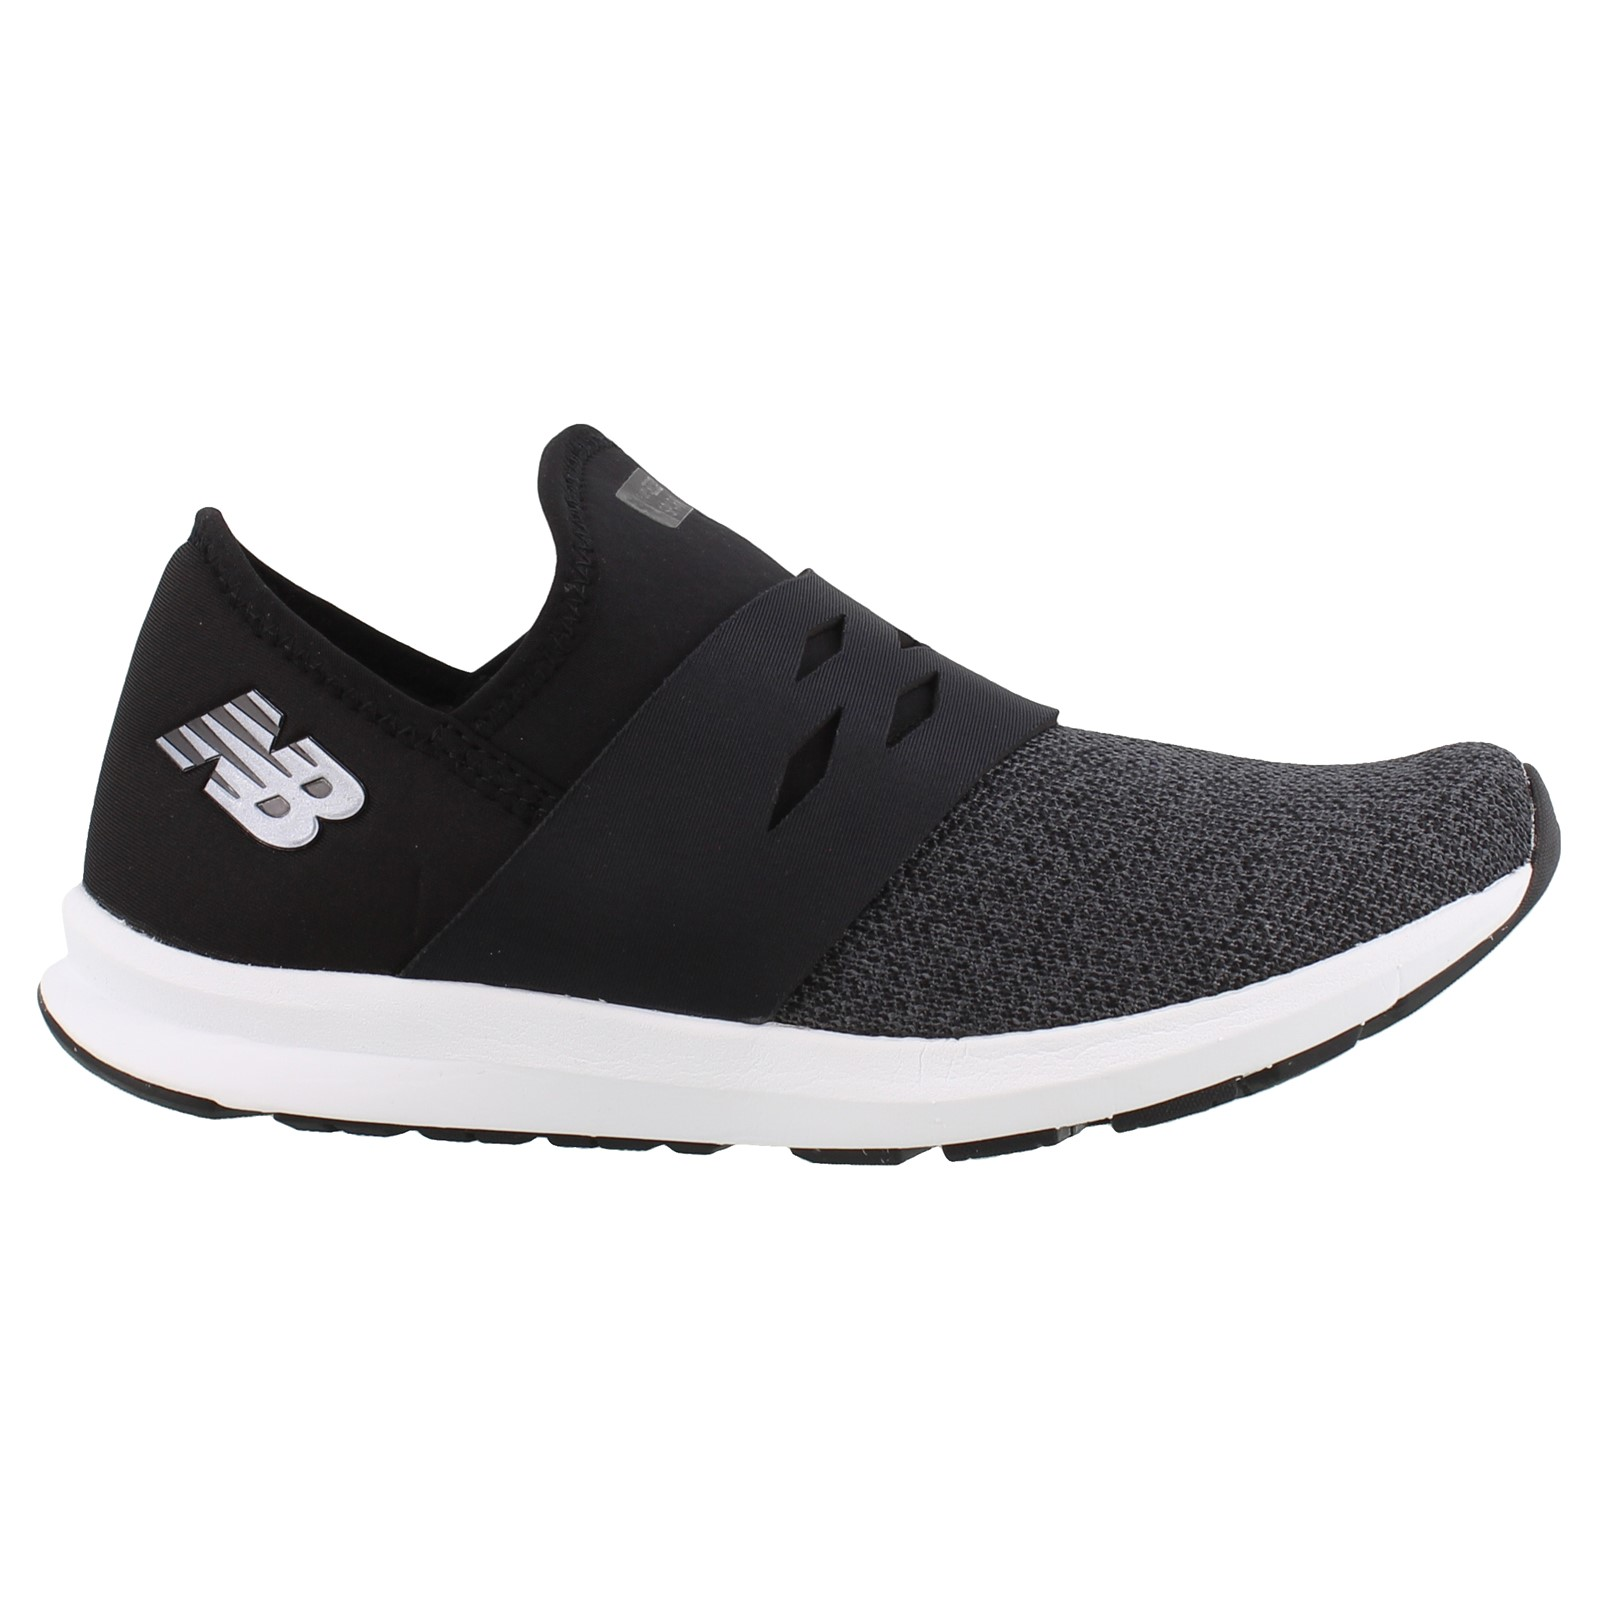 Women's New Balance, Spark Slip on Running Shoes